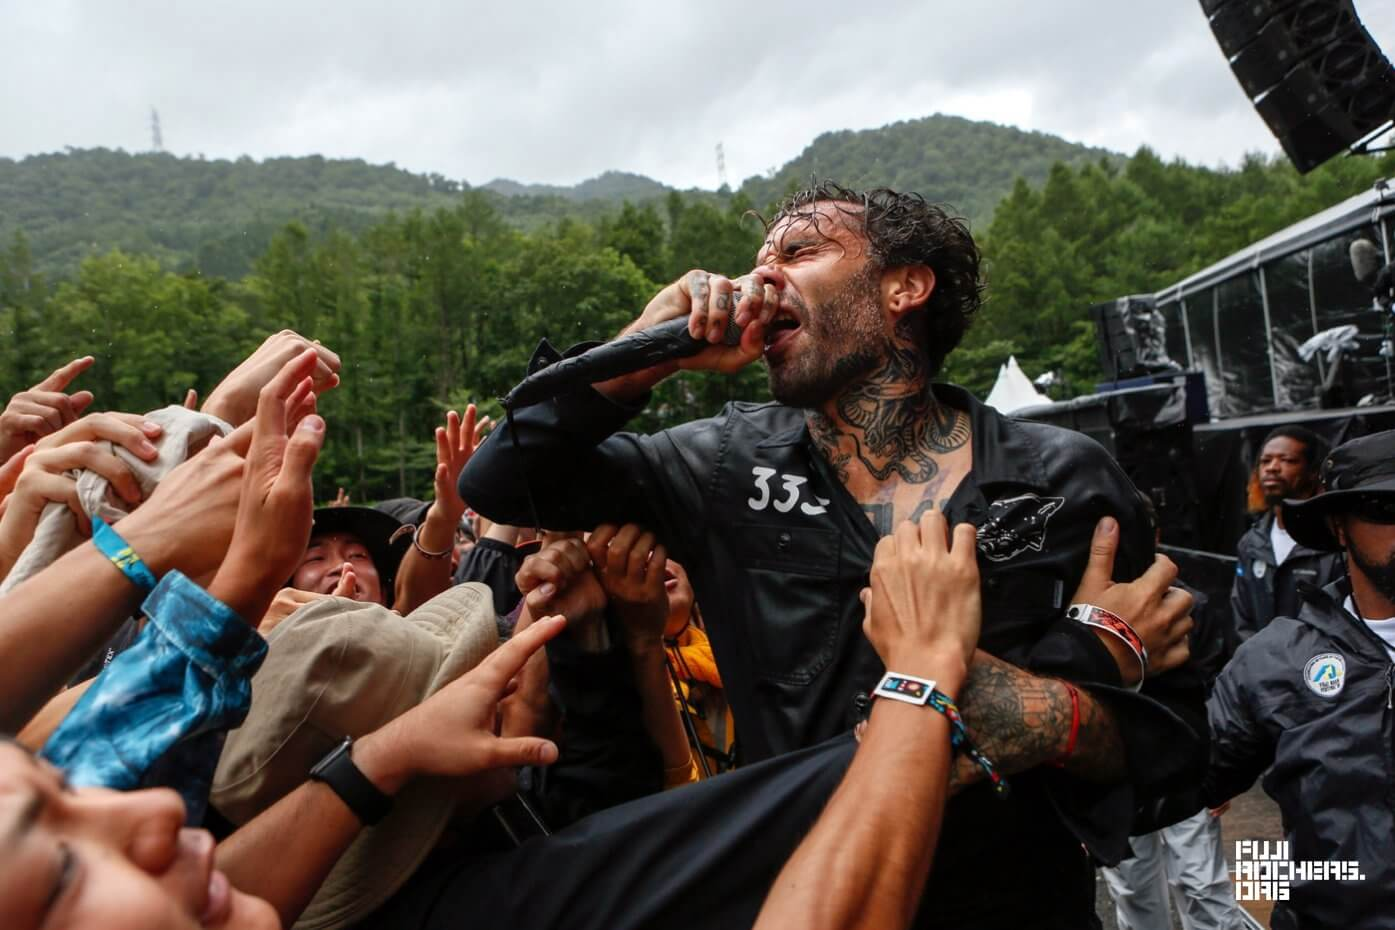 THE FEVER 333 | FUJI ROCK FESTIVAL '18 | Photo by 古川 喜隆